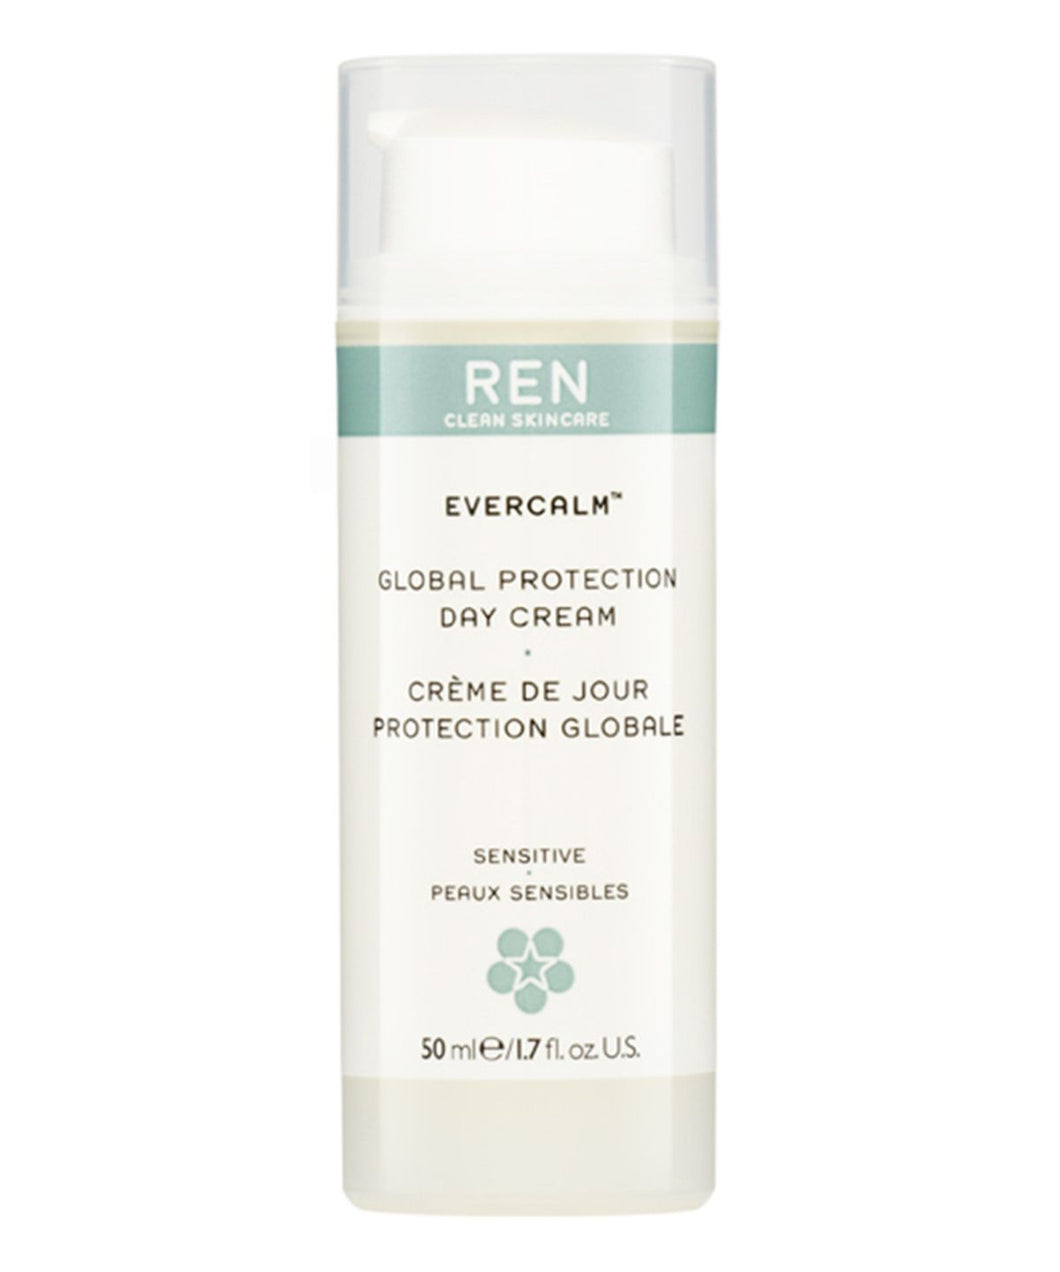 REN Global Protection Day Cream 50ml The Voewood - The Voewood